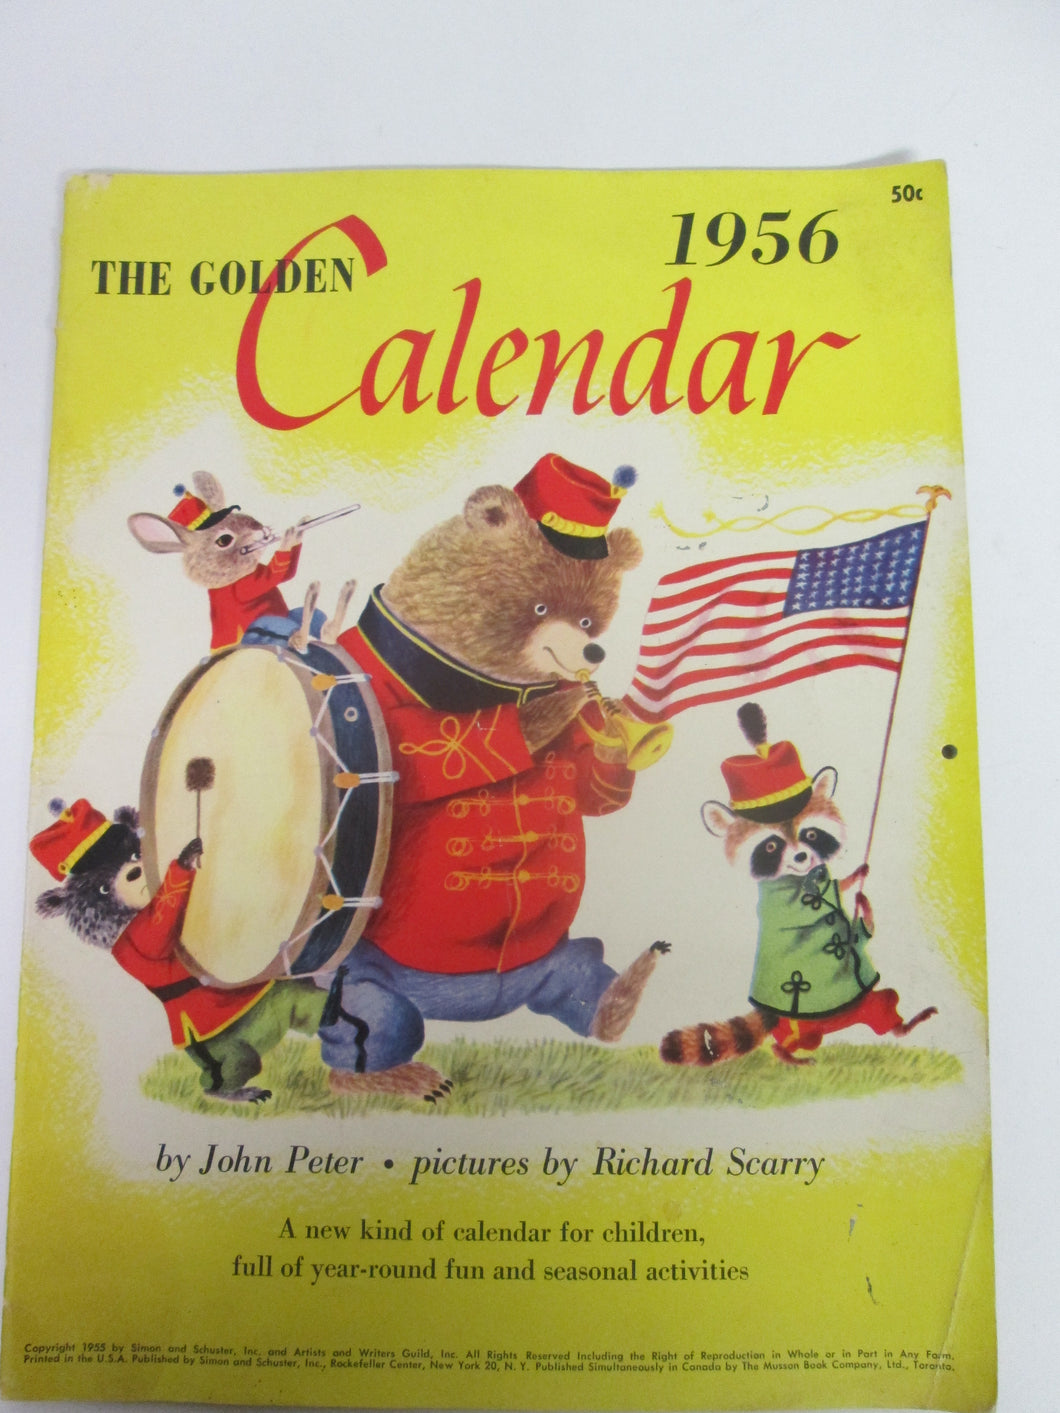 The Golden Calendar by John Peter, pictures by Richard Scarry 1956